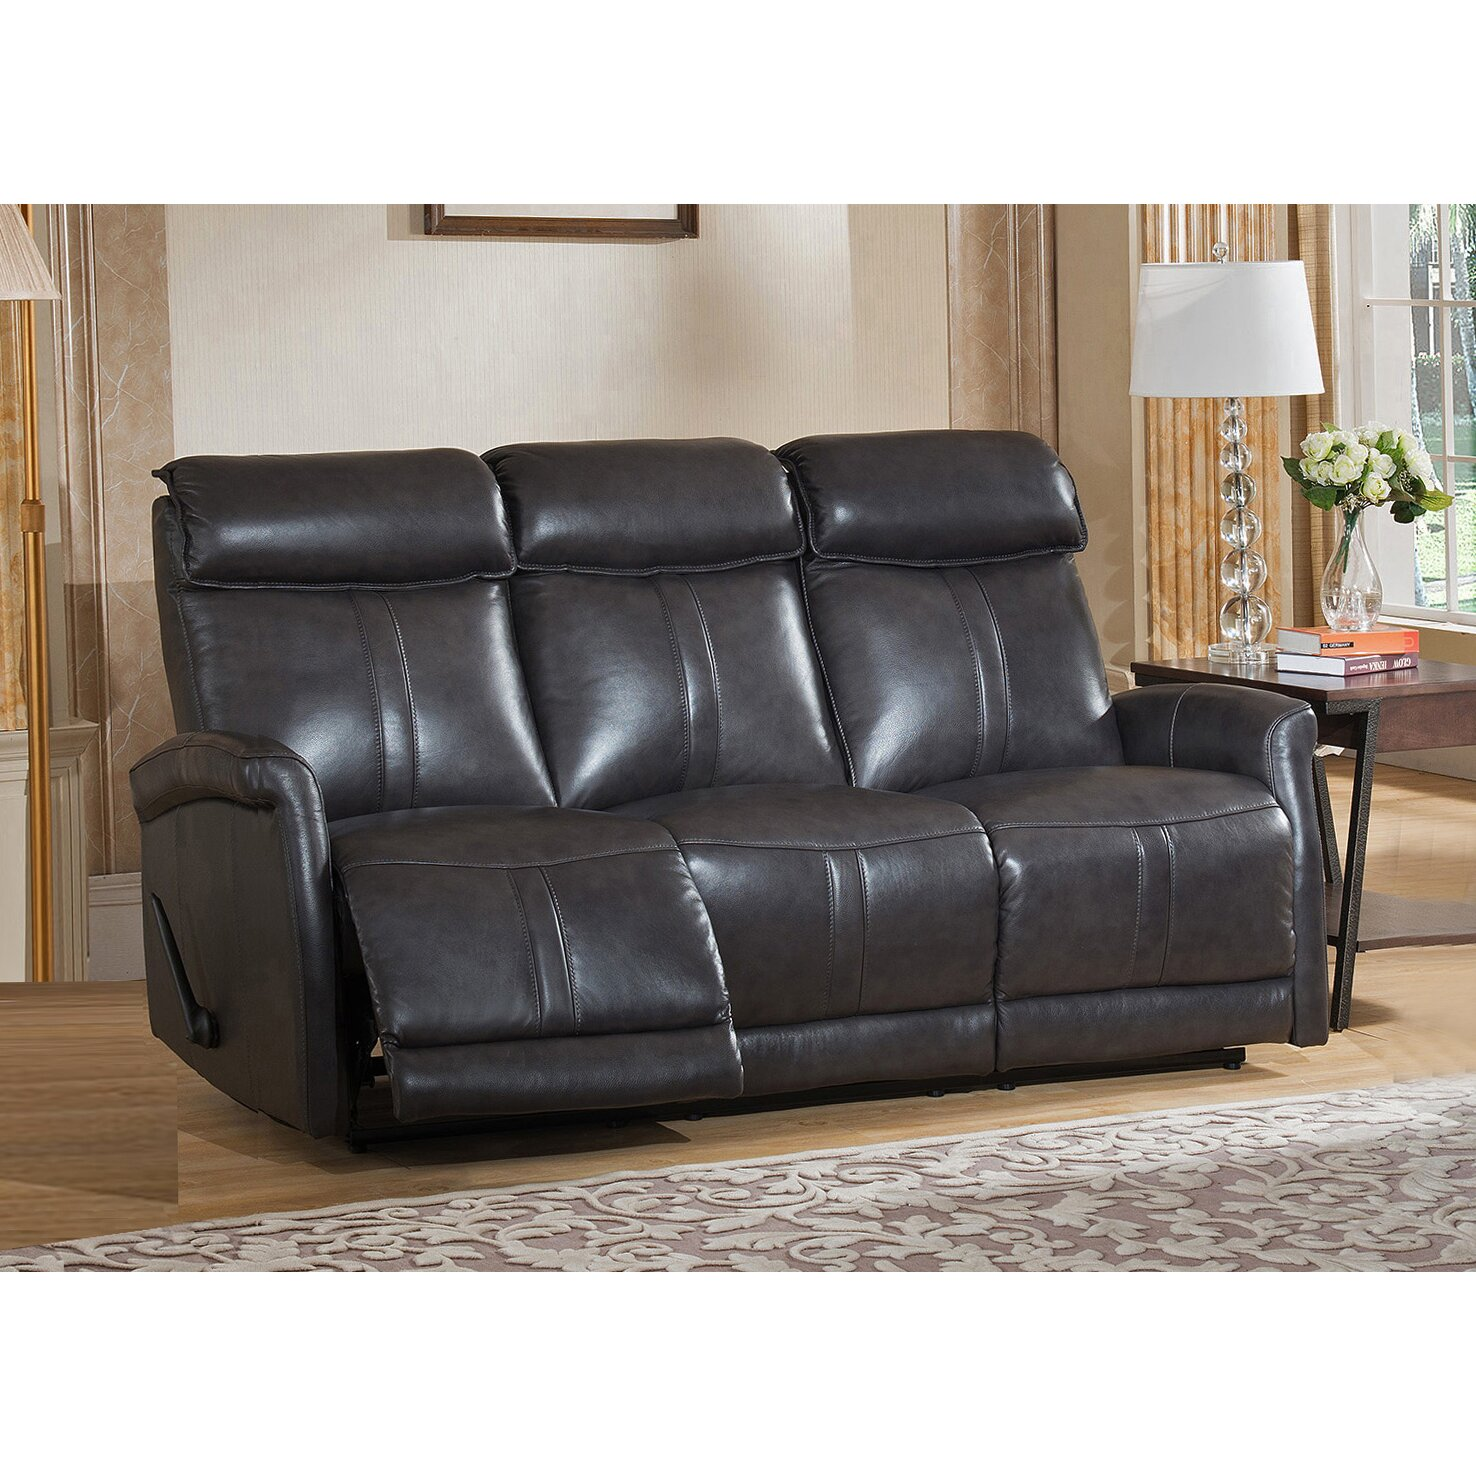 Amax mosby 3 piece leather living room set wayfair for 3pc leather living room set